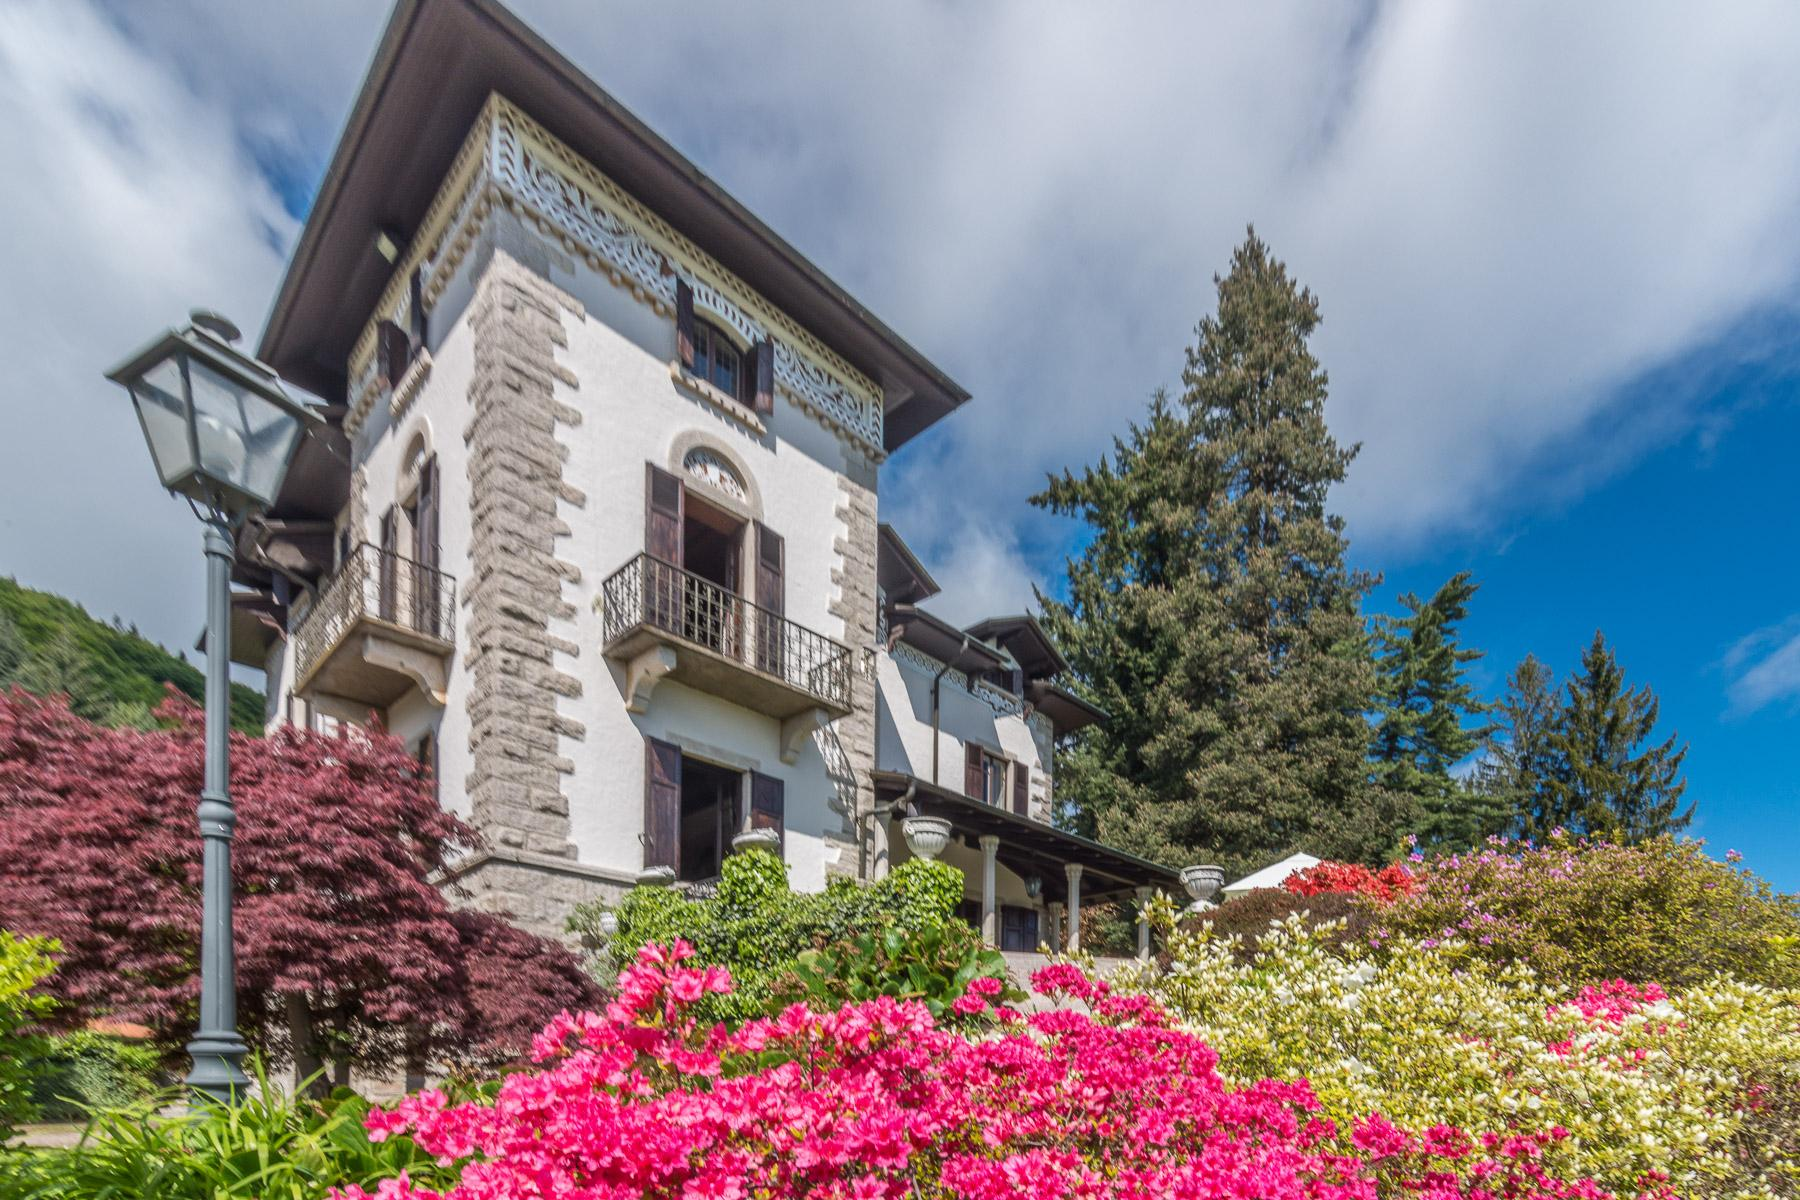 Charming historic villa on the hills of Stresa - 4